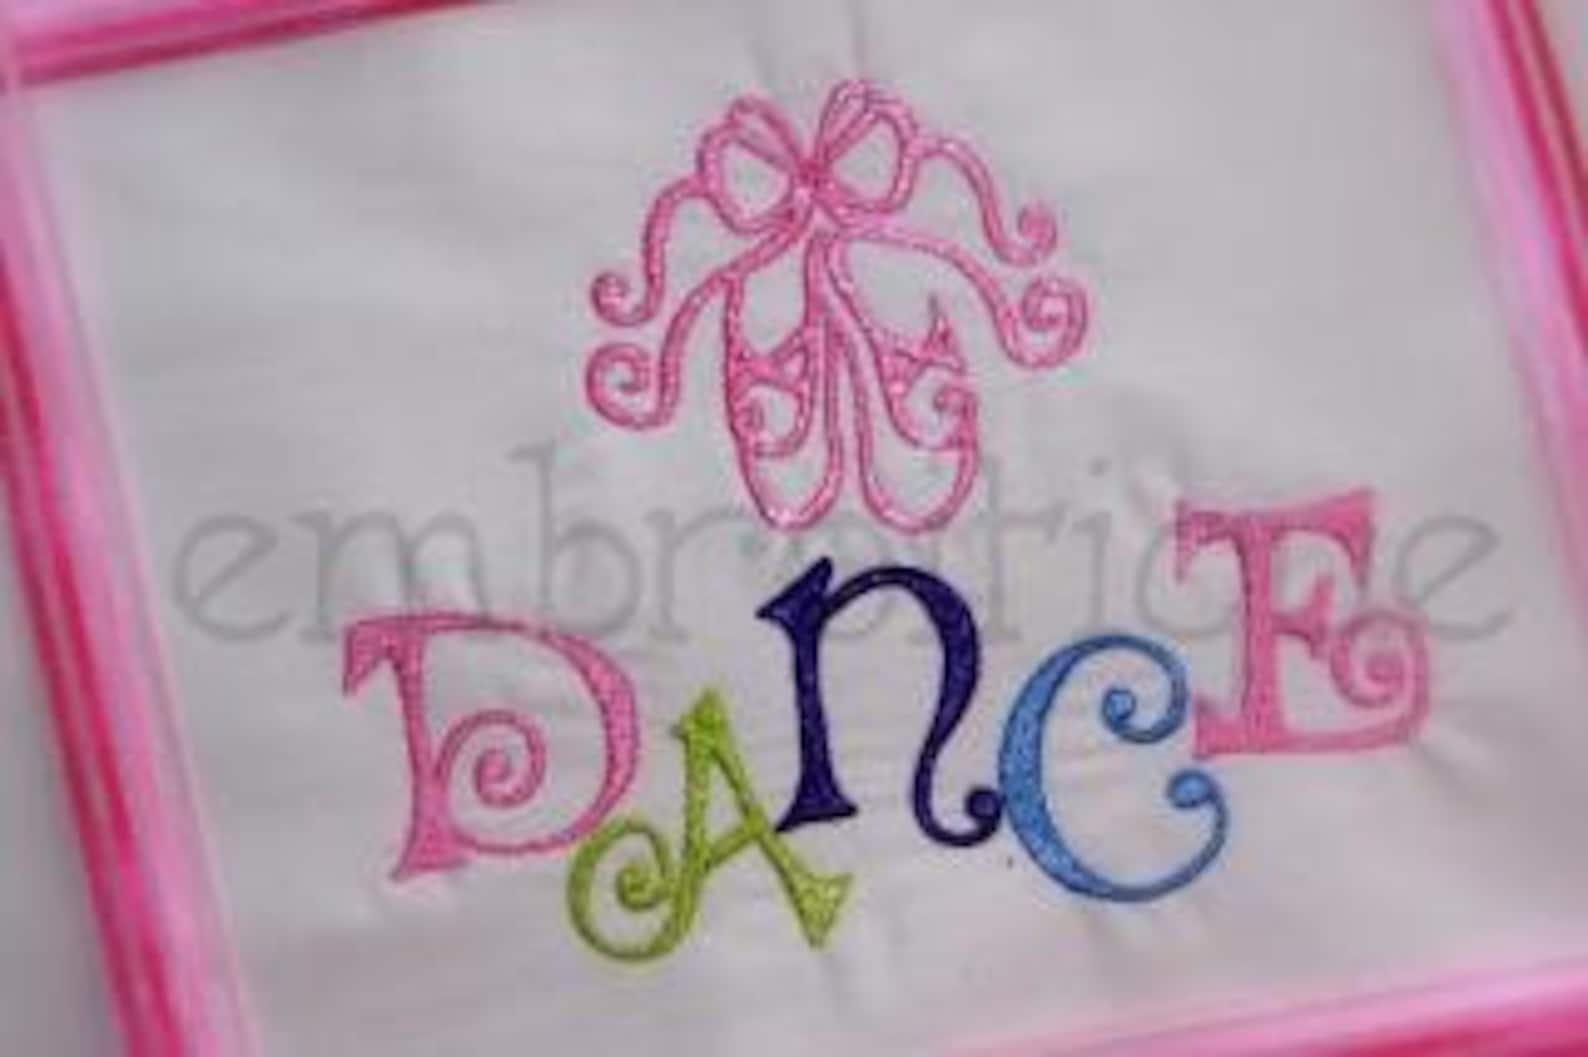 ballet shoes and dance set - 9 files included design for machine embroidery- instant email delivery download